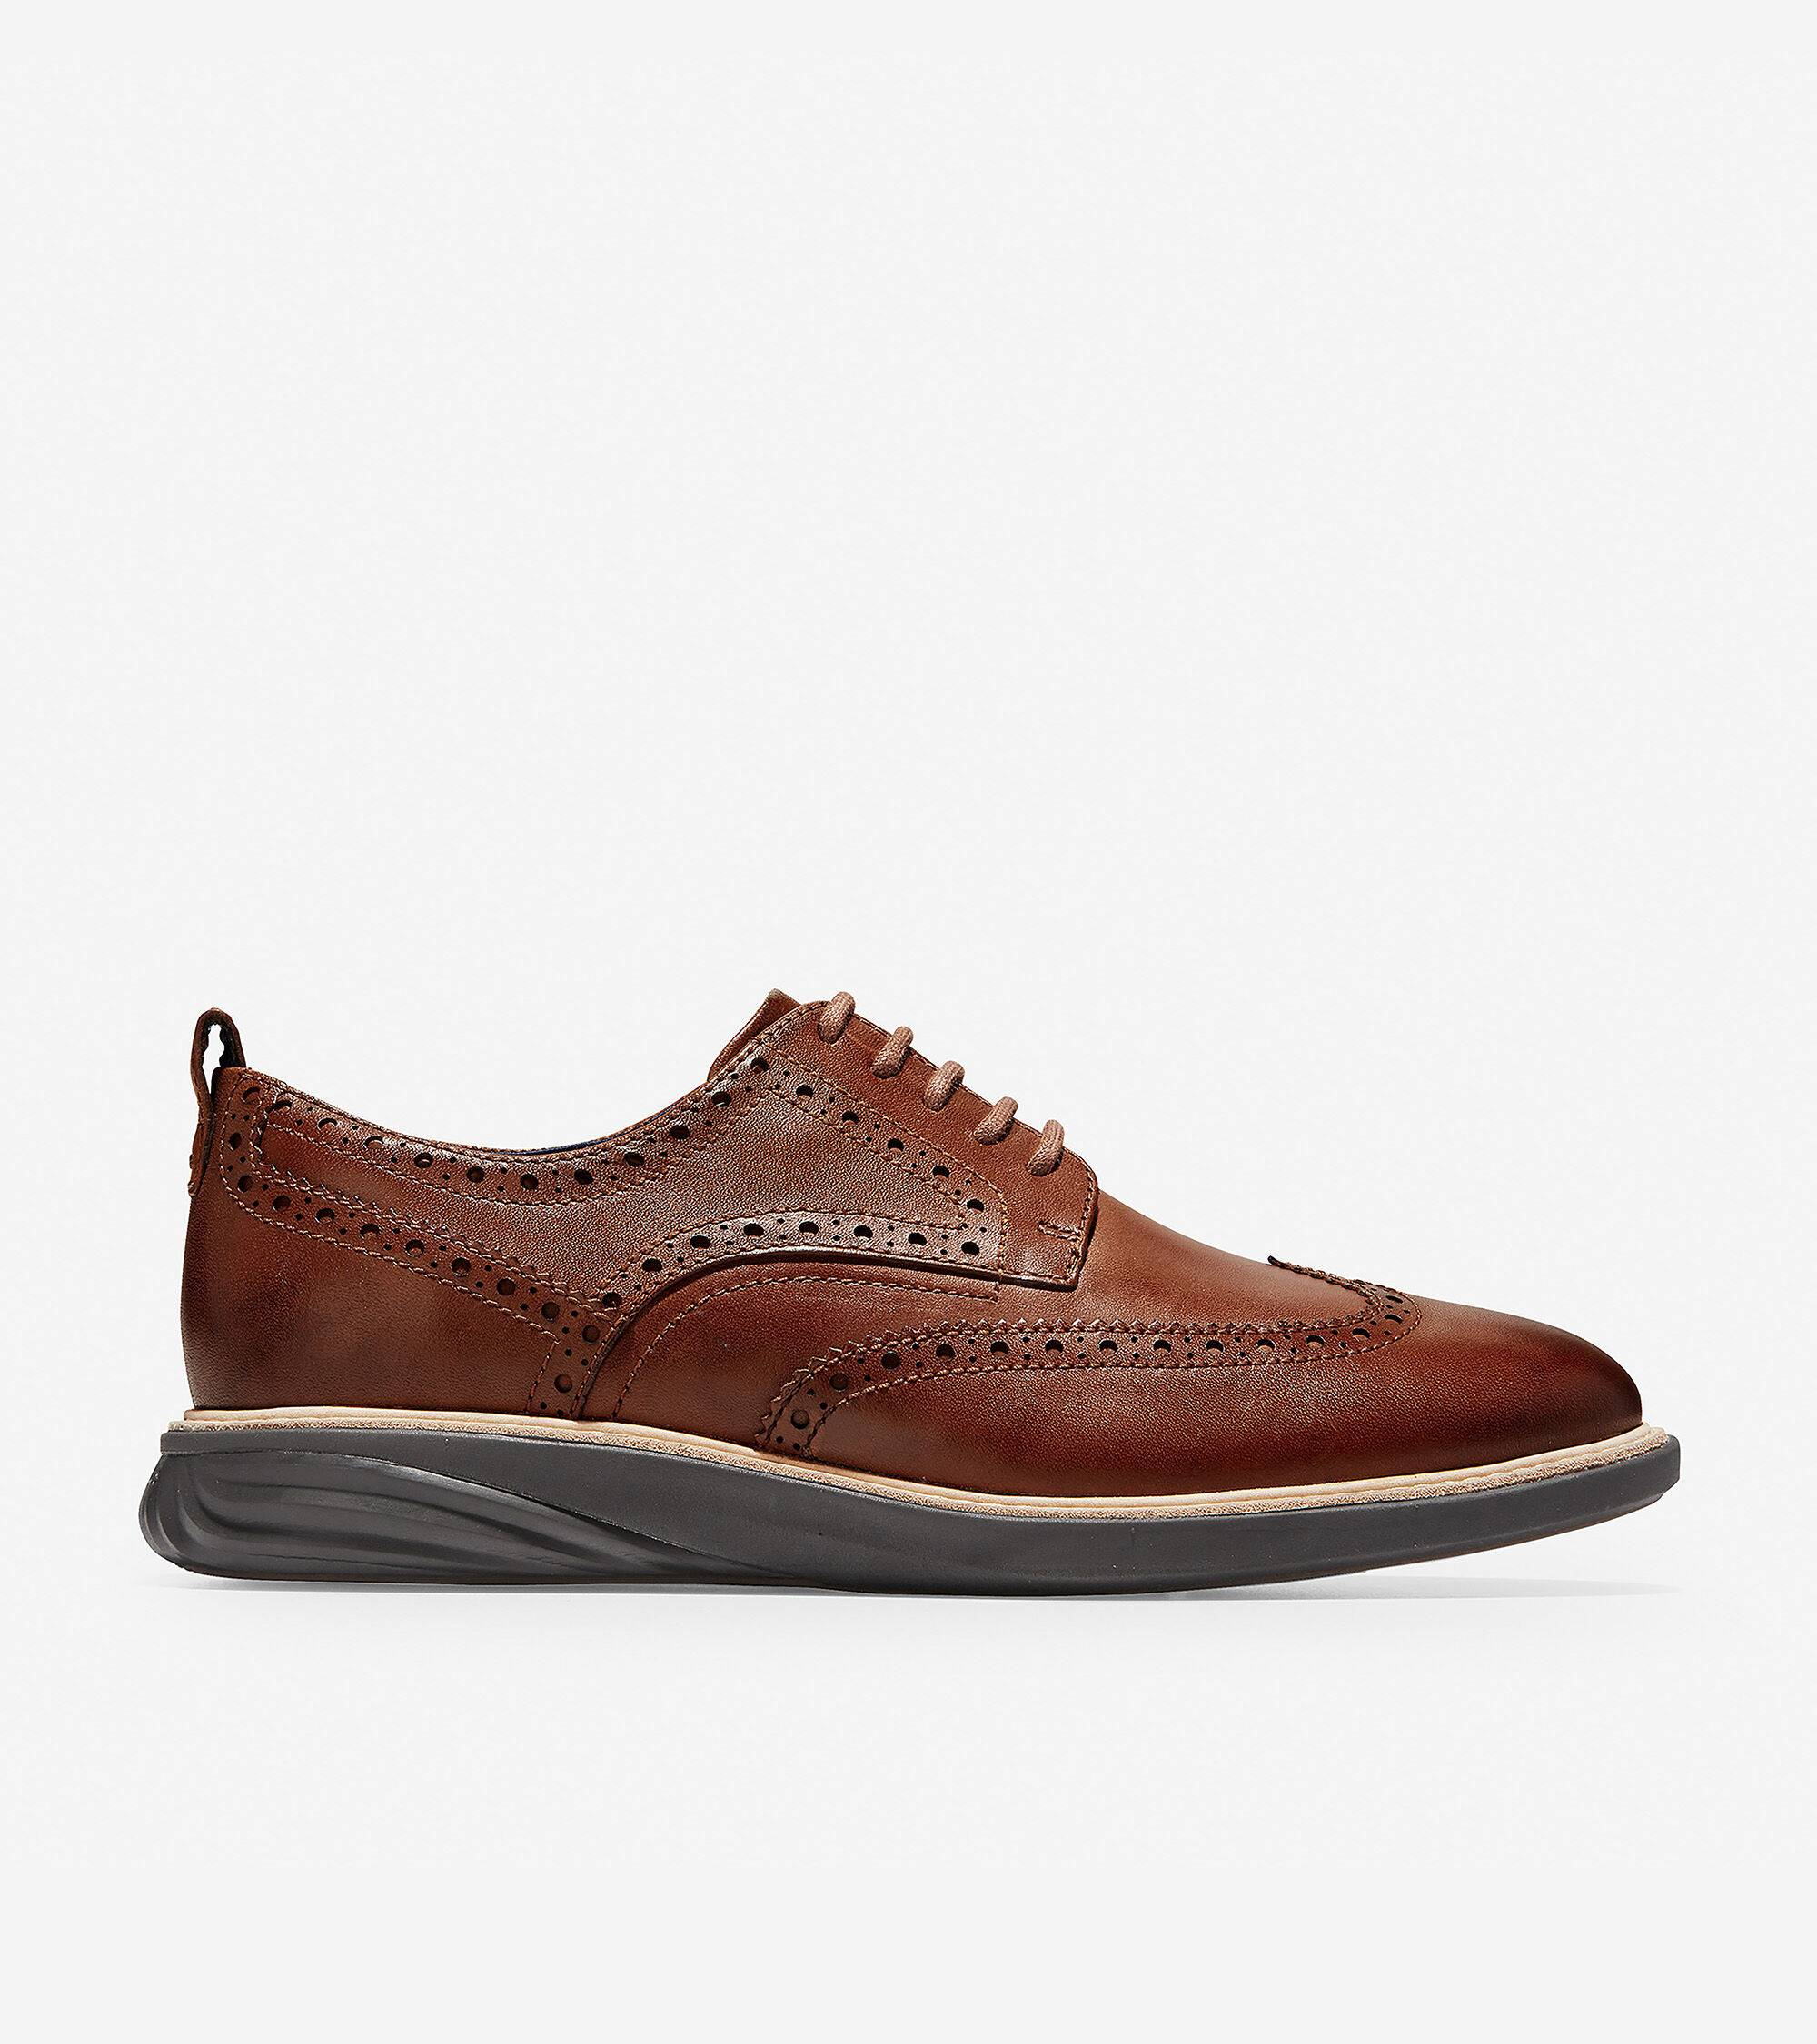 Cole Haan Grand Evolution Wingtip Oxford - Brown - Size: 10